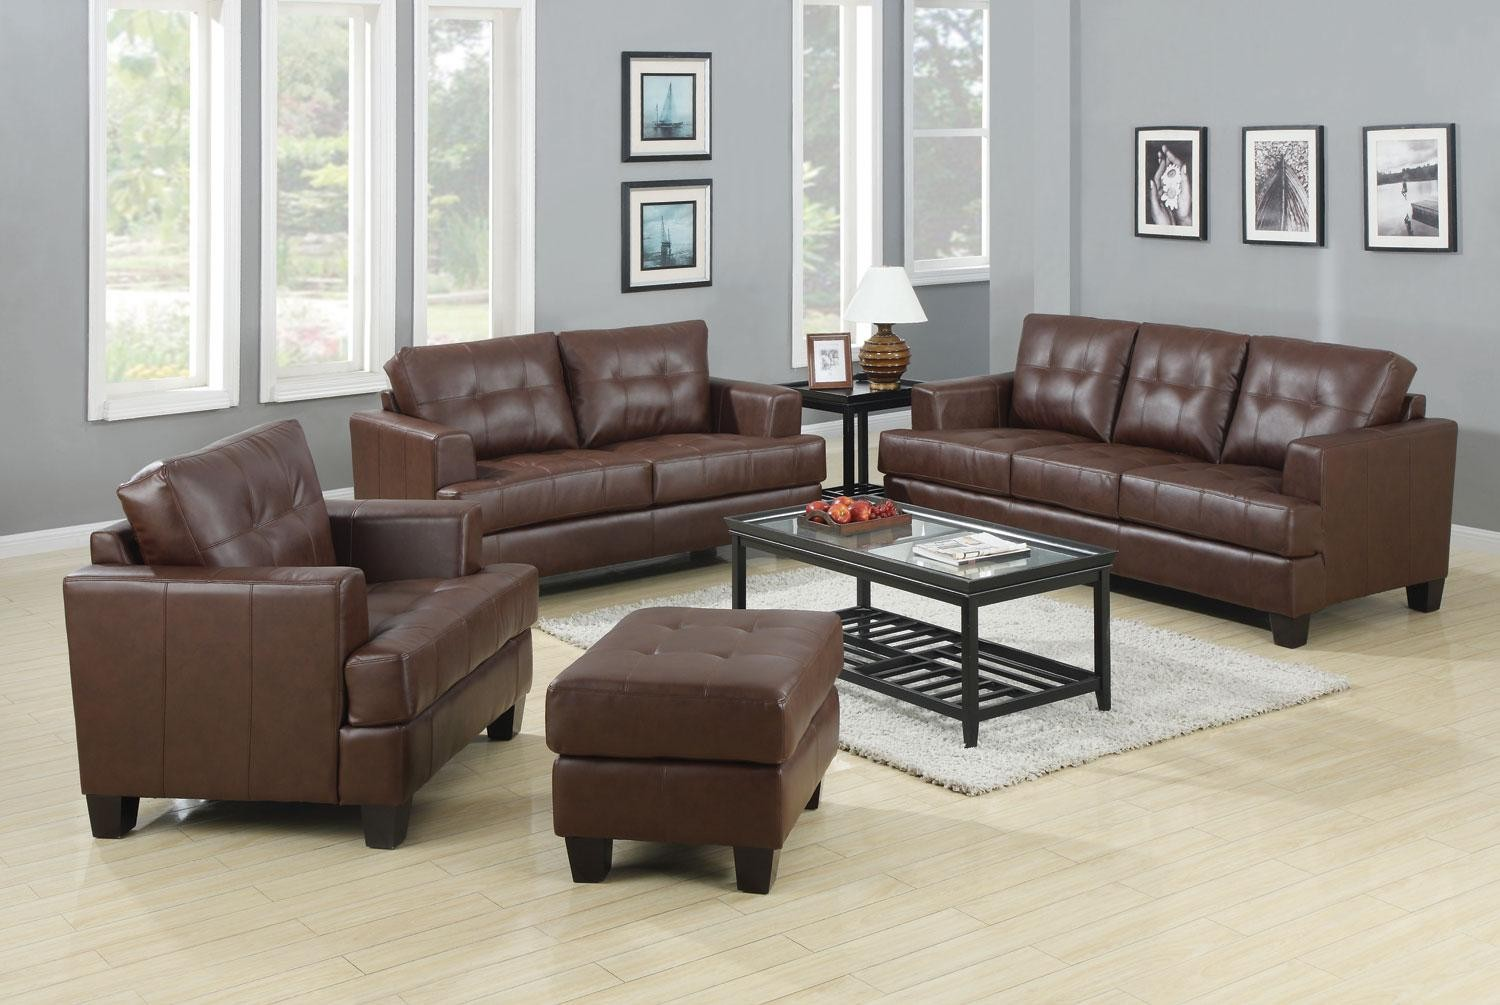 Samuel dark brown living room set from coaster 50407 for Dark brown living room set